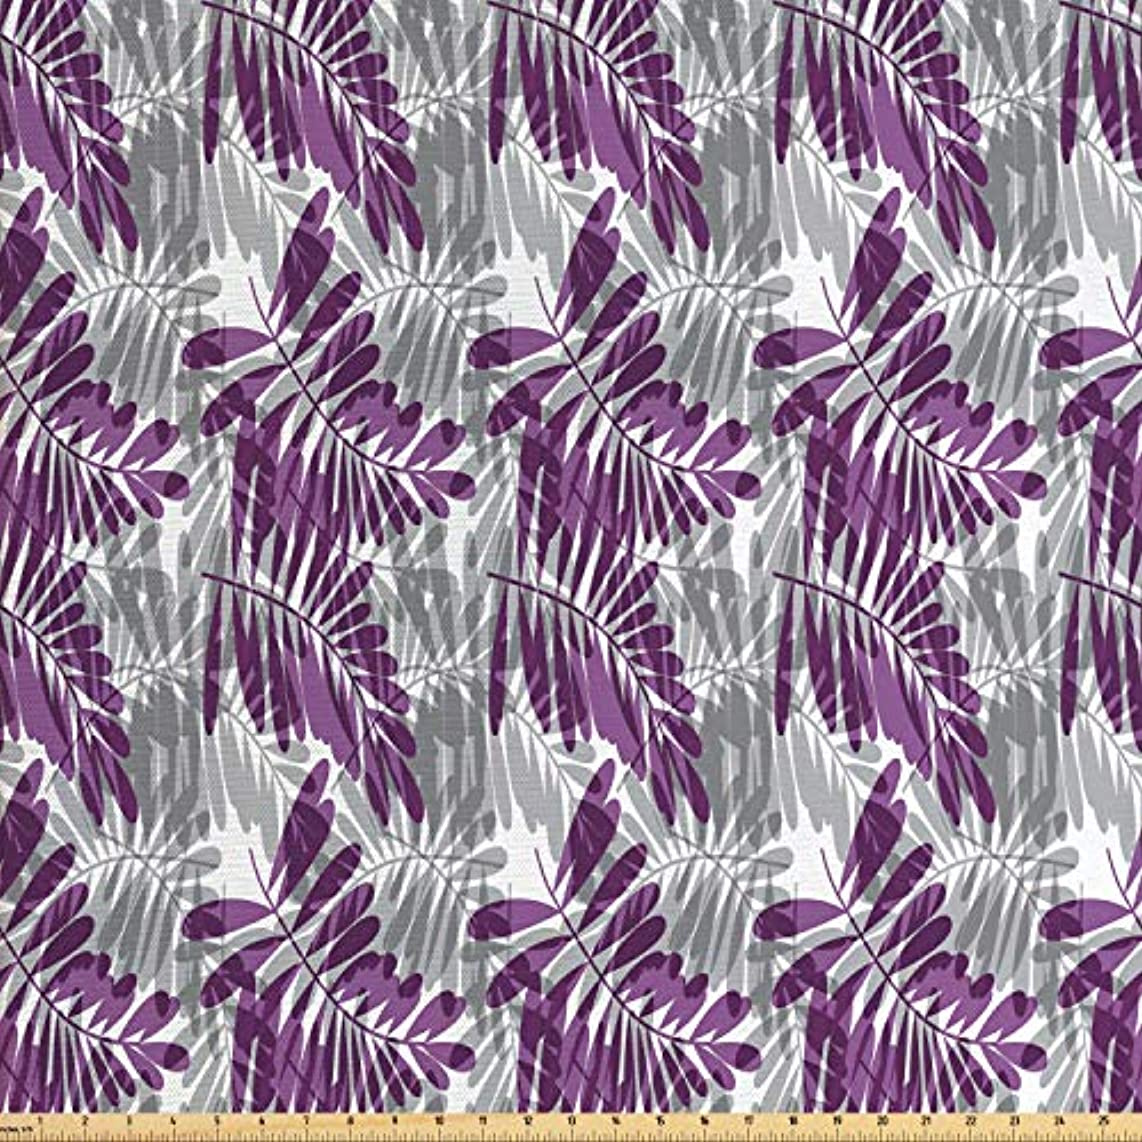 Lunarable Purple and Grey Fabric by The Yard, Exotic Forest Leaves Silhouettes Tropical Bicolor Foliage Illustration, Decorative Fabric for Upholstery and Home Accents, 1 Yard, Grey and Purple